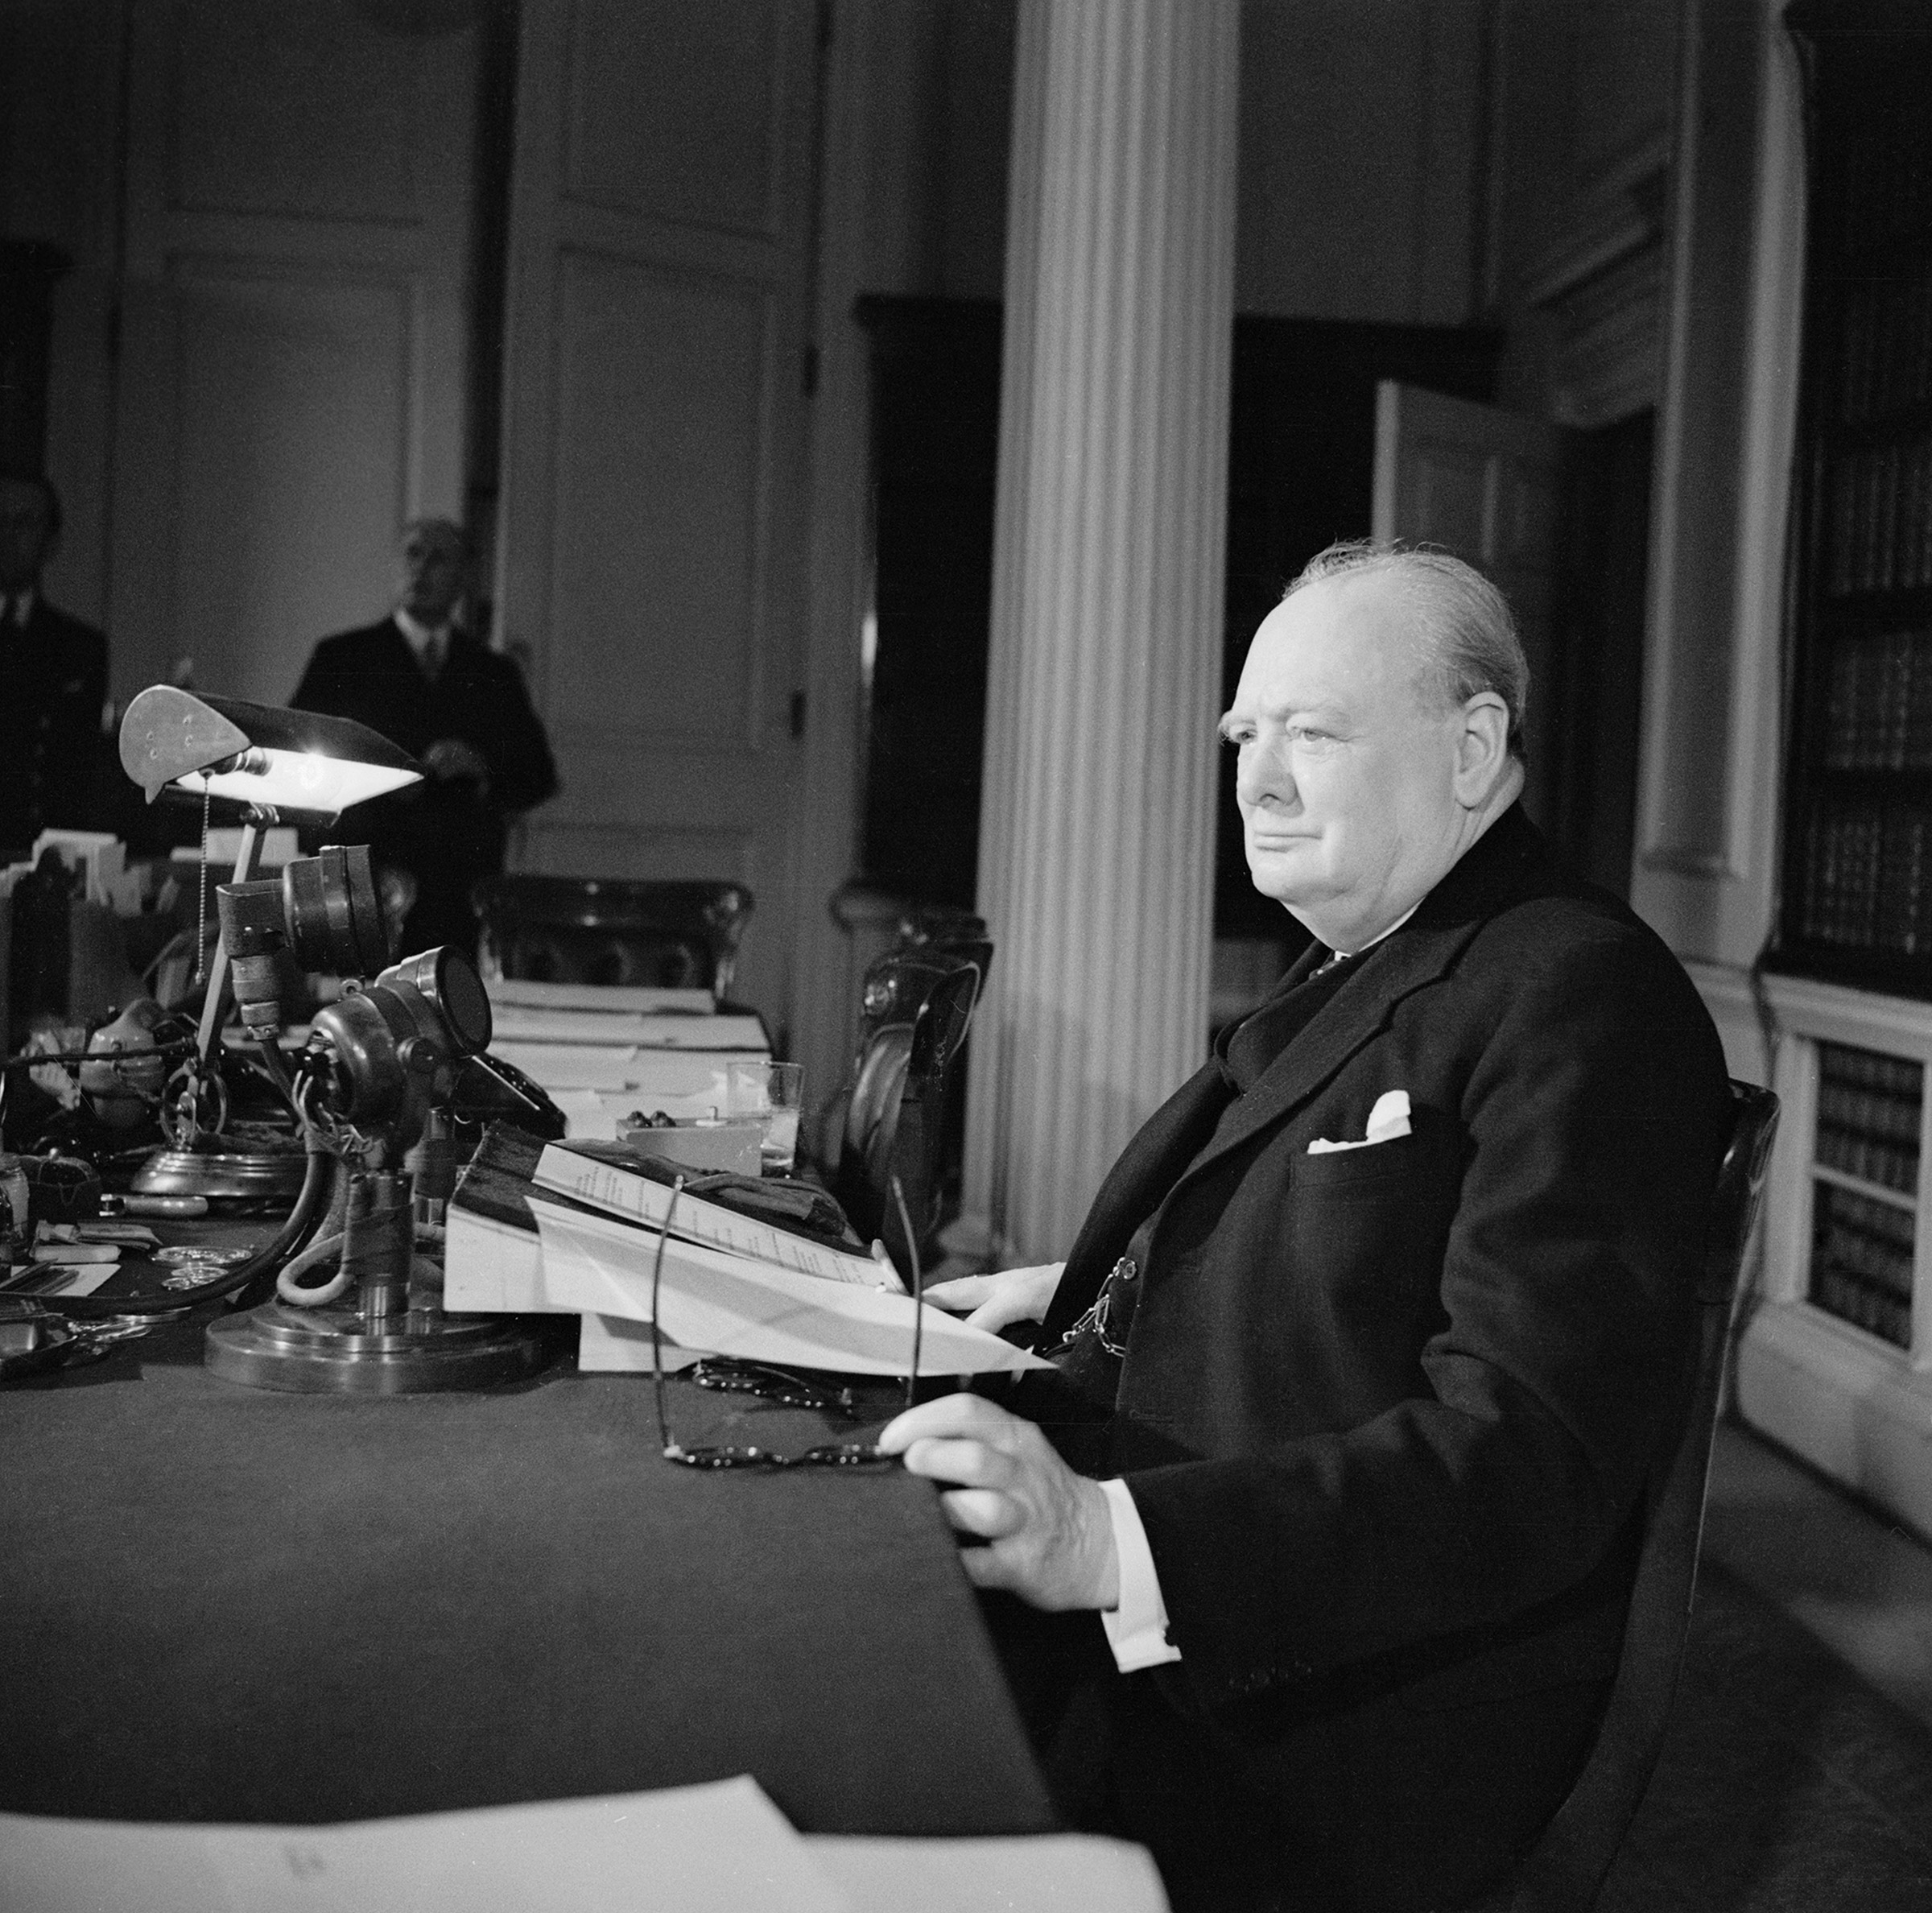 Churchill makes the victory broadcast on BBC radio, May 8, 1945.